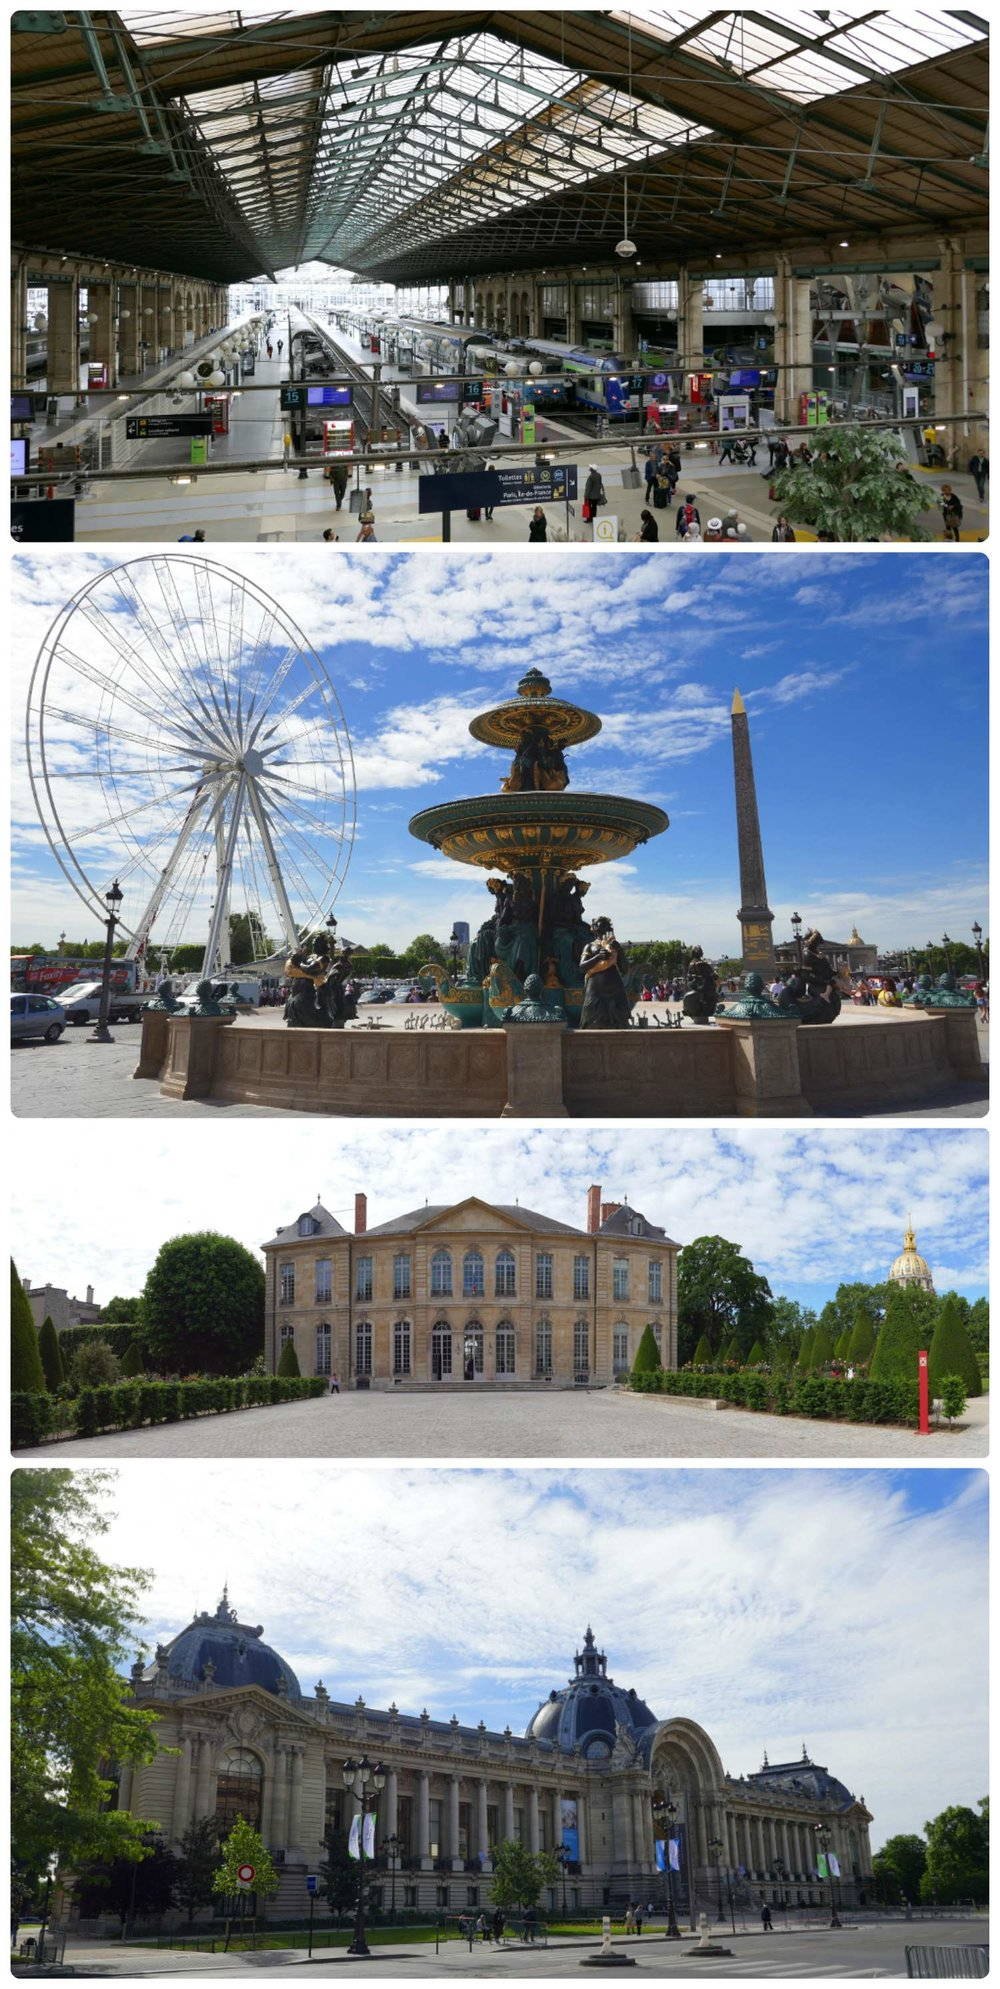 Clockwise (from the top): Looking out across the Paris train station Gare du Nord, the Fontaine des Fleuves at Place de la Concorde, the courtyard at the Rodin Museum, looking at the Petit Palais across the street from the Grand Palais.